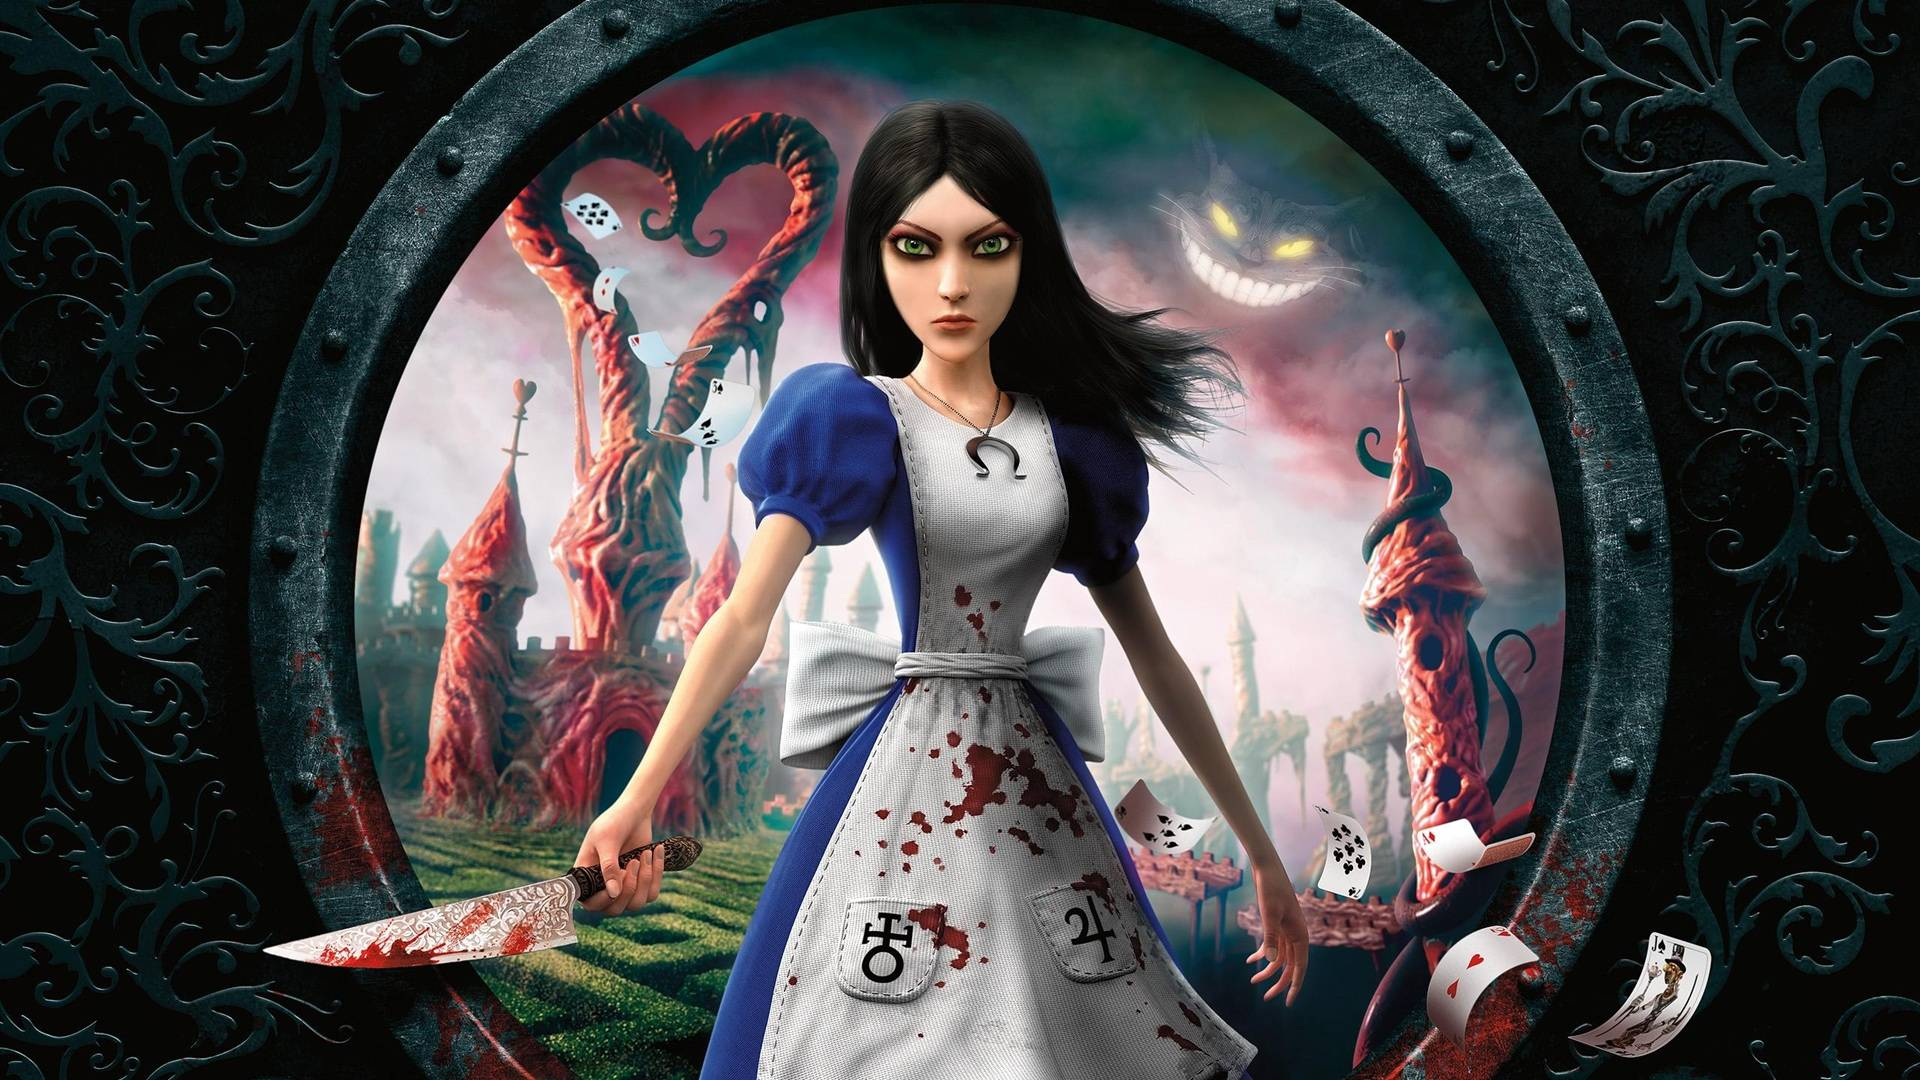 alice-the-madness-returns-hd-1080p